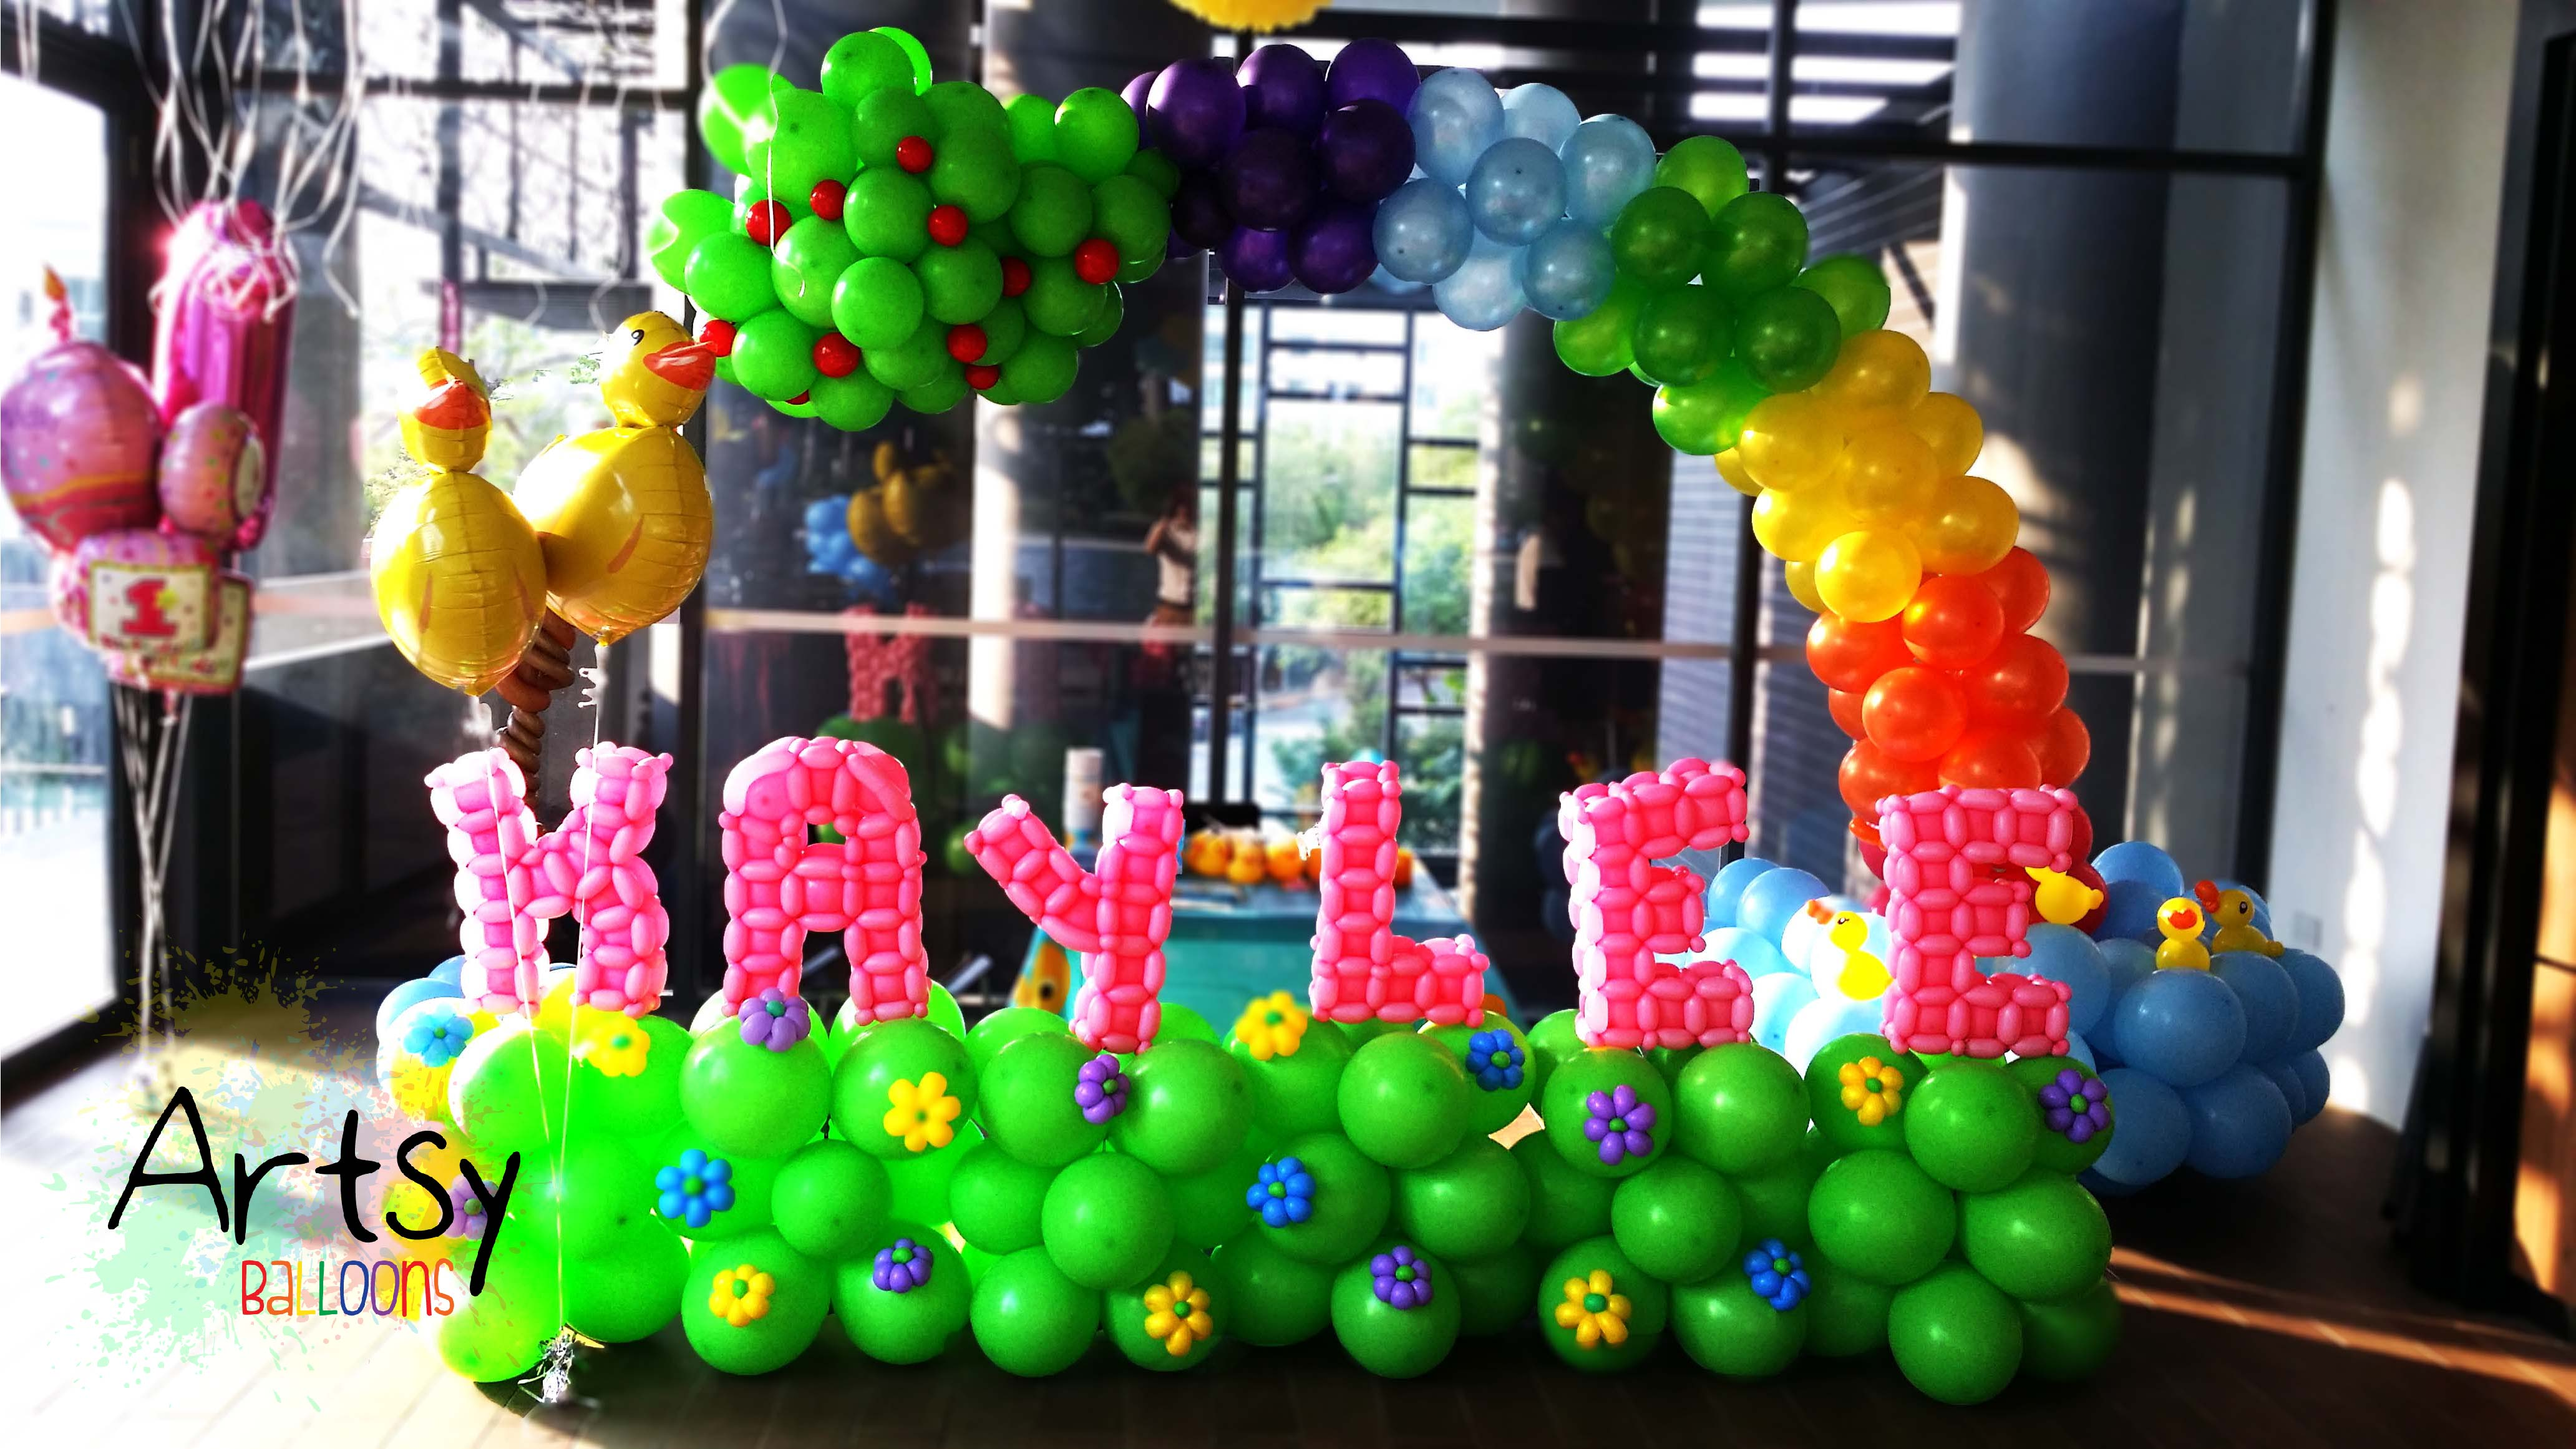 Fully Customised Balloon Backdrop Arch with Advance Letterings